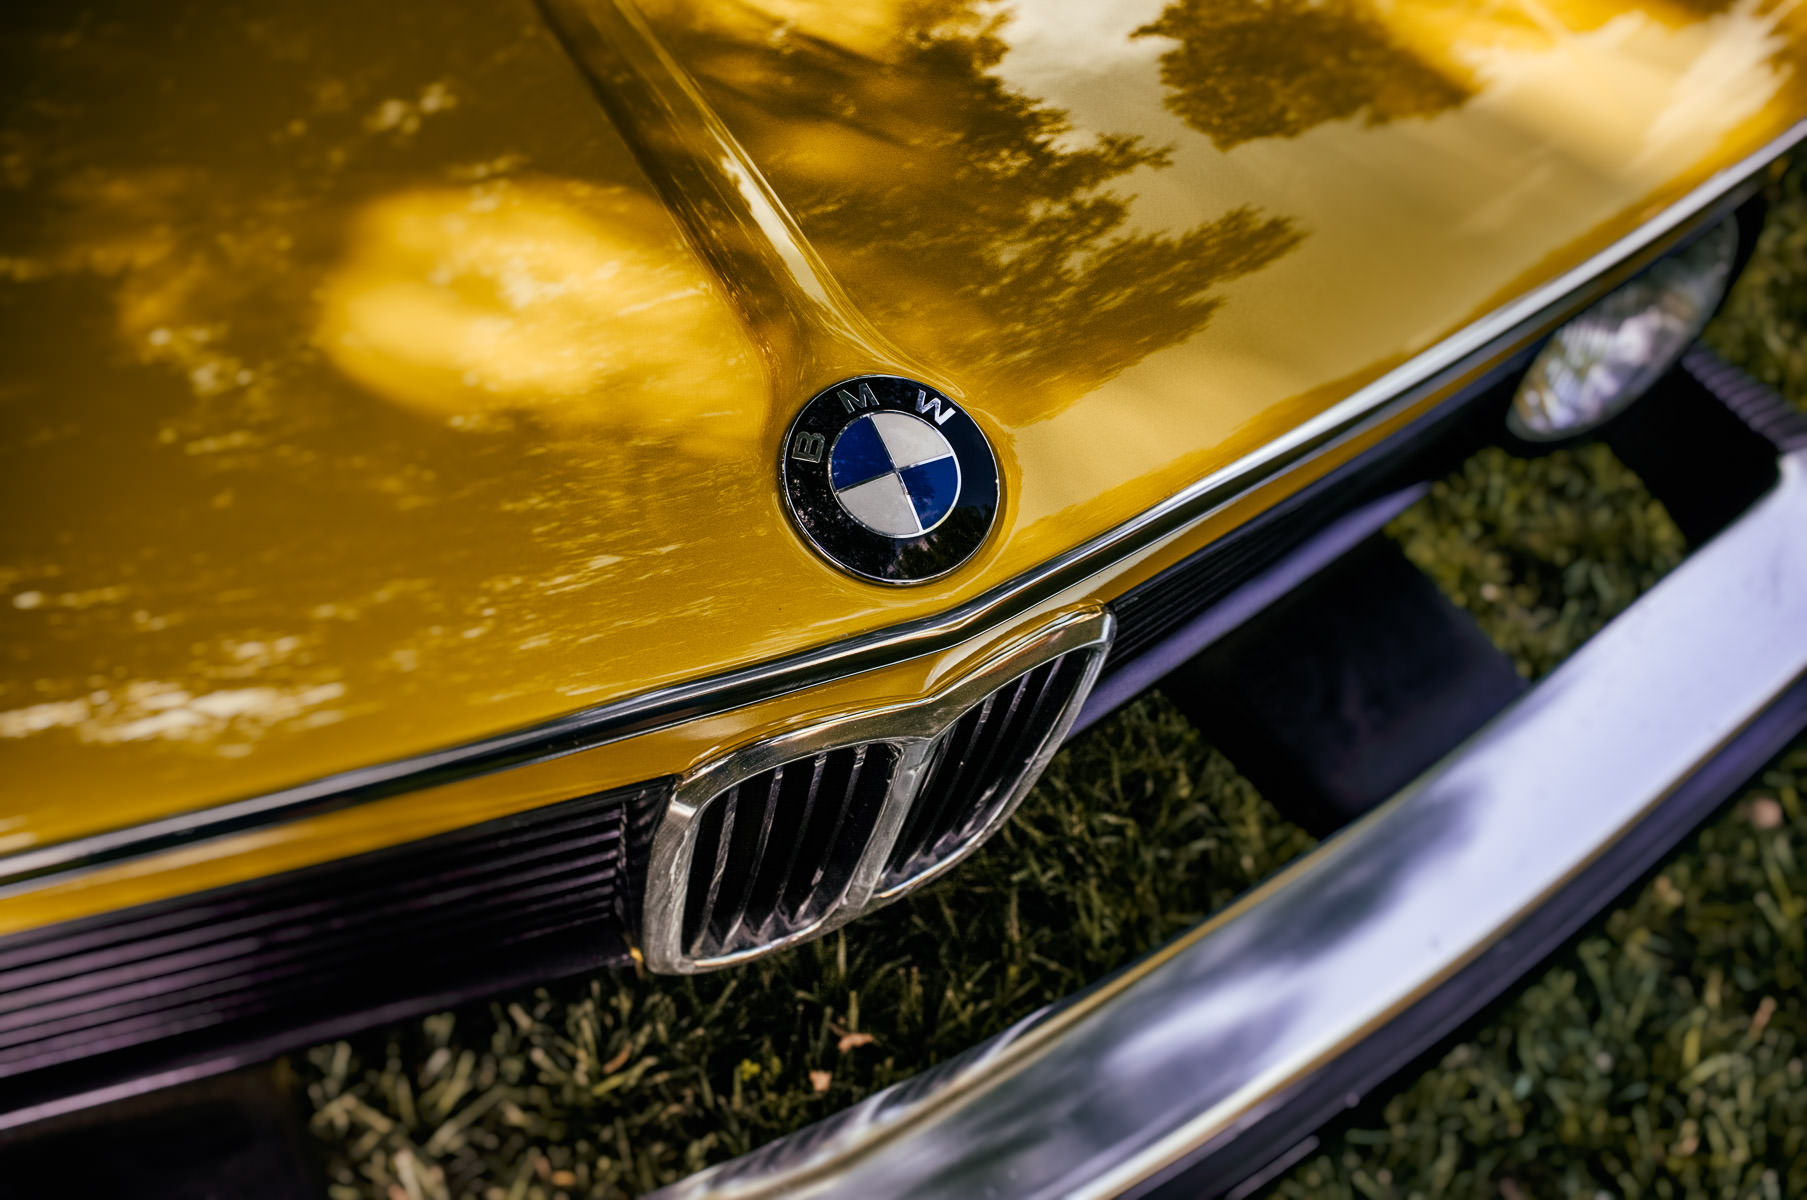 The badge of a classic BMW 2002at the Autos in the Park event at Dallas' Cooper Aerobics Center.